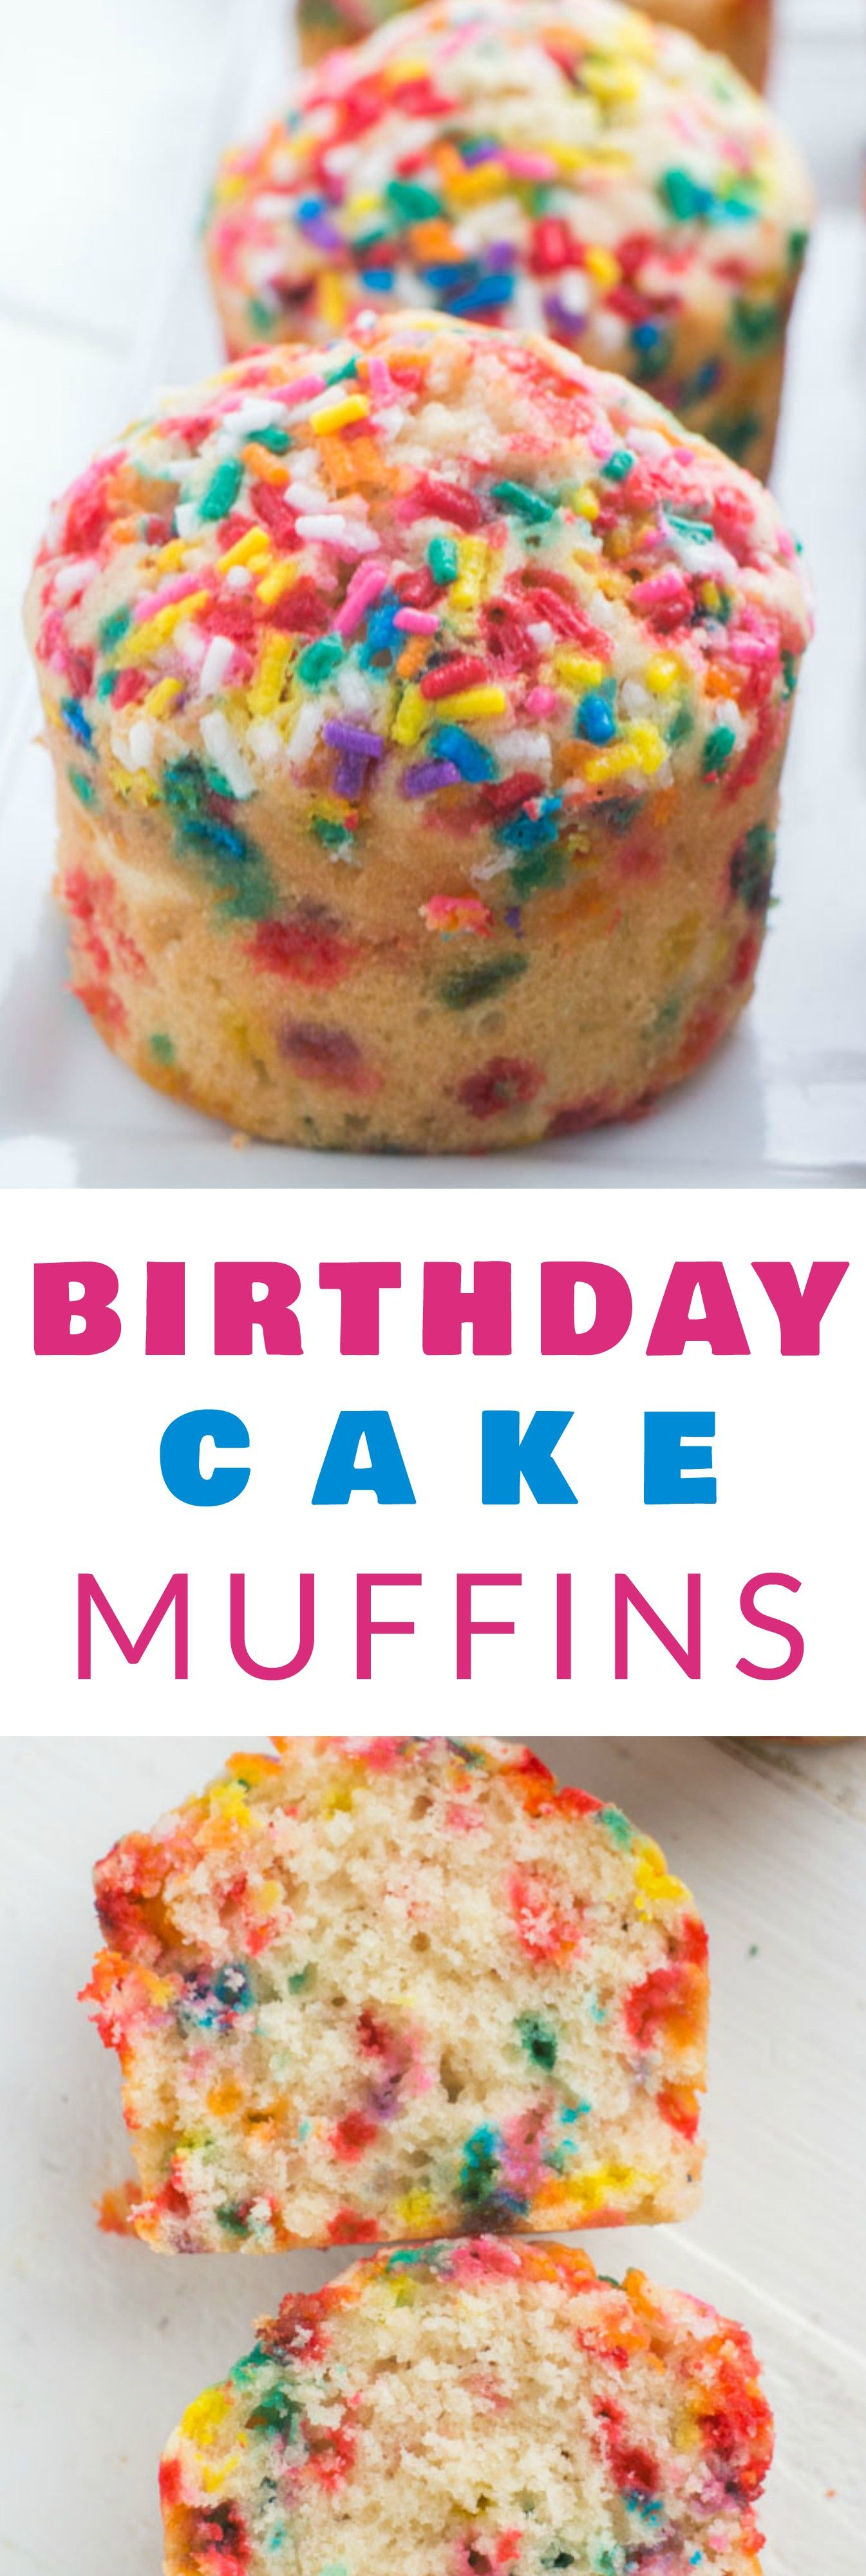 Sprinkle Birthday Cake Muffins -   13 desserts Birthday awesome ideas